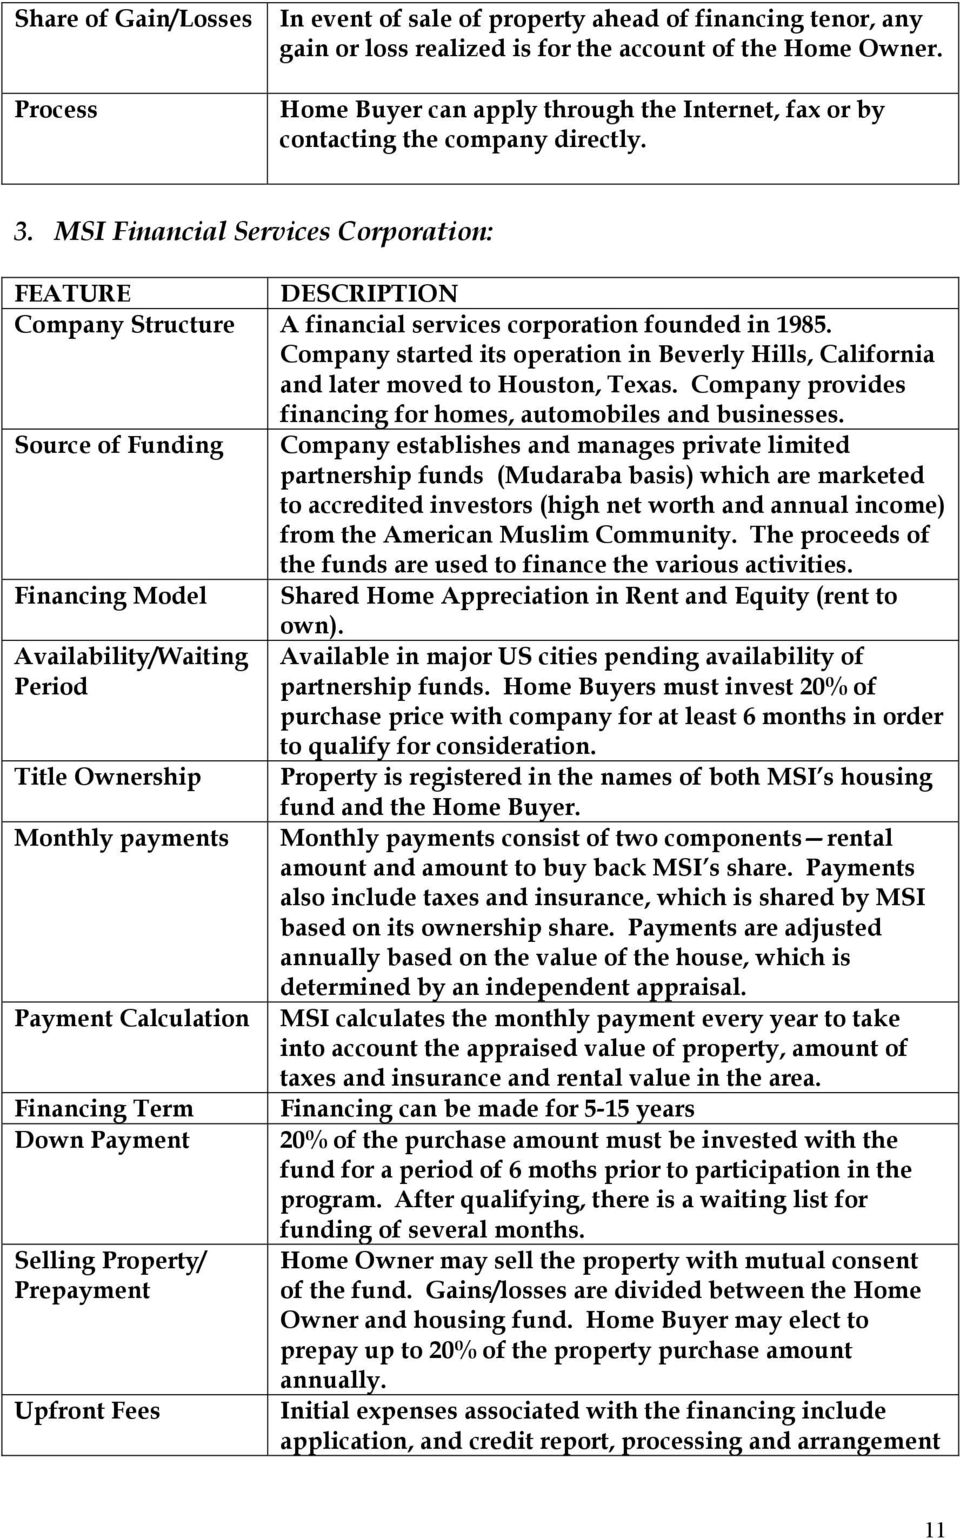 ISLAMIC HOME FINANCING IN THE UNITED STATES - PDF